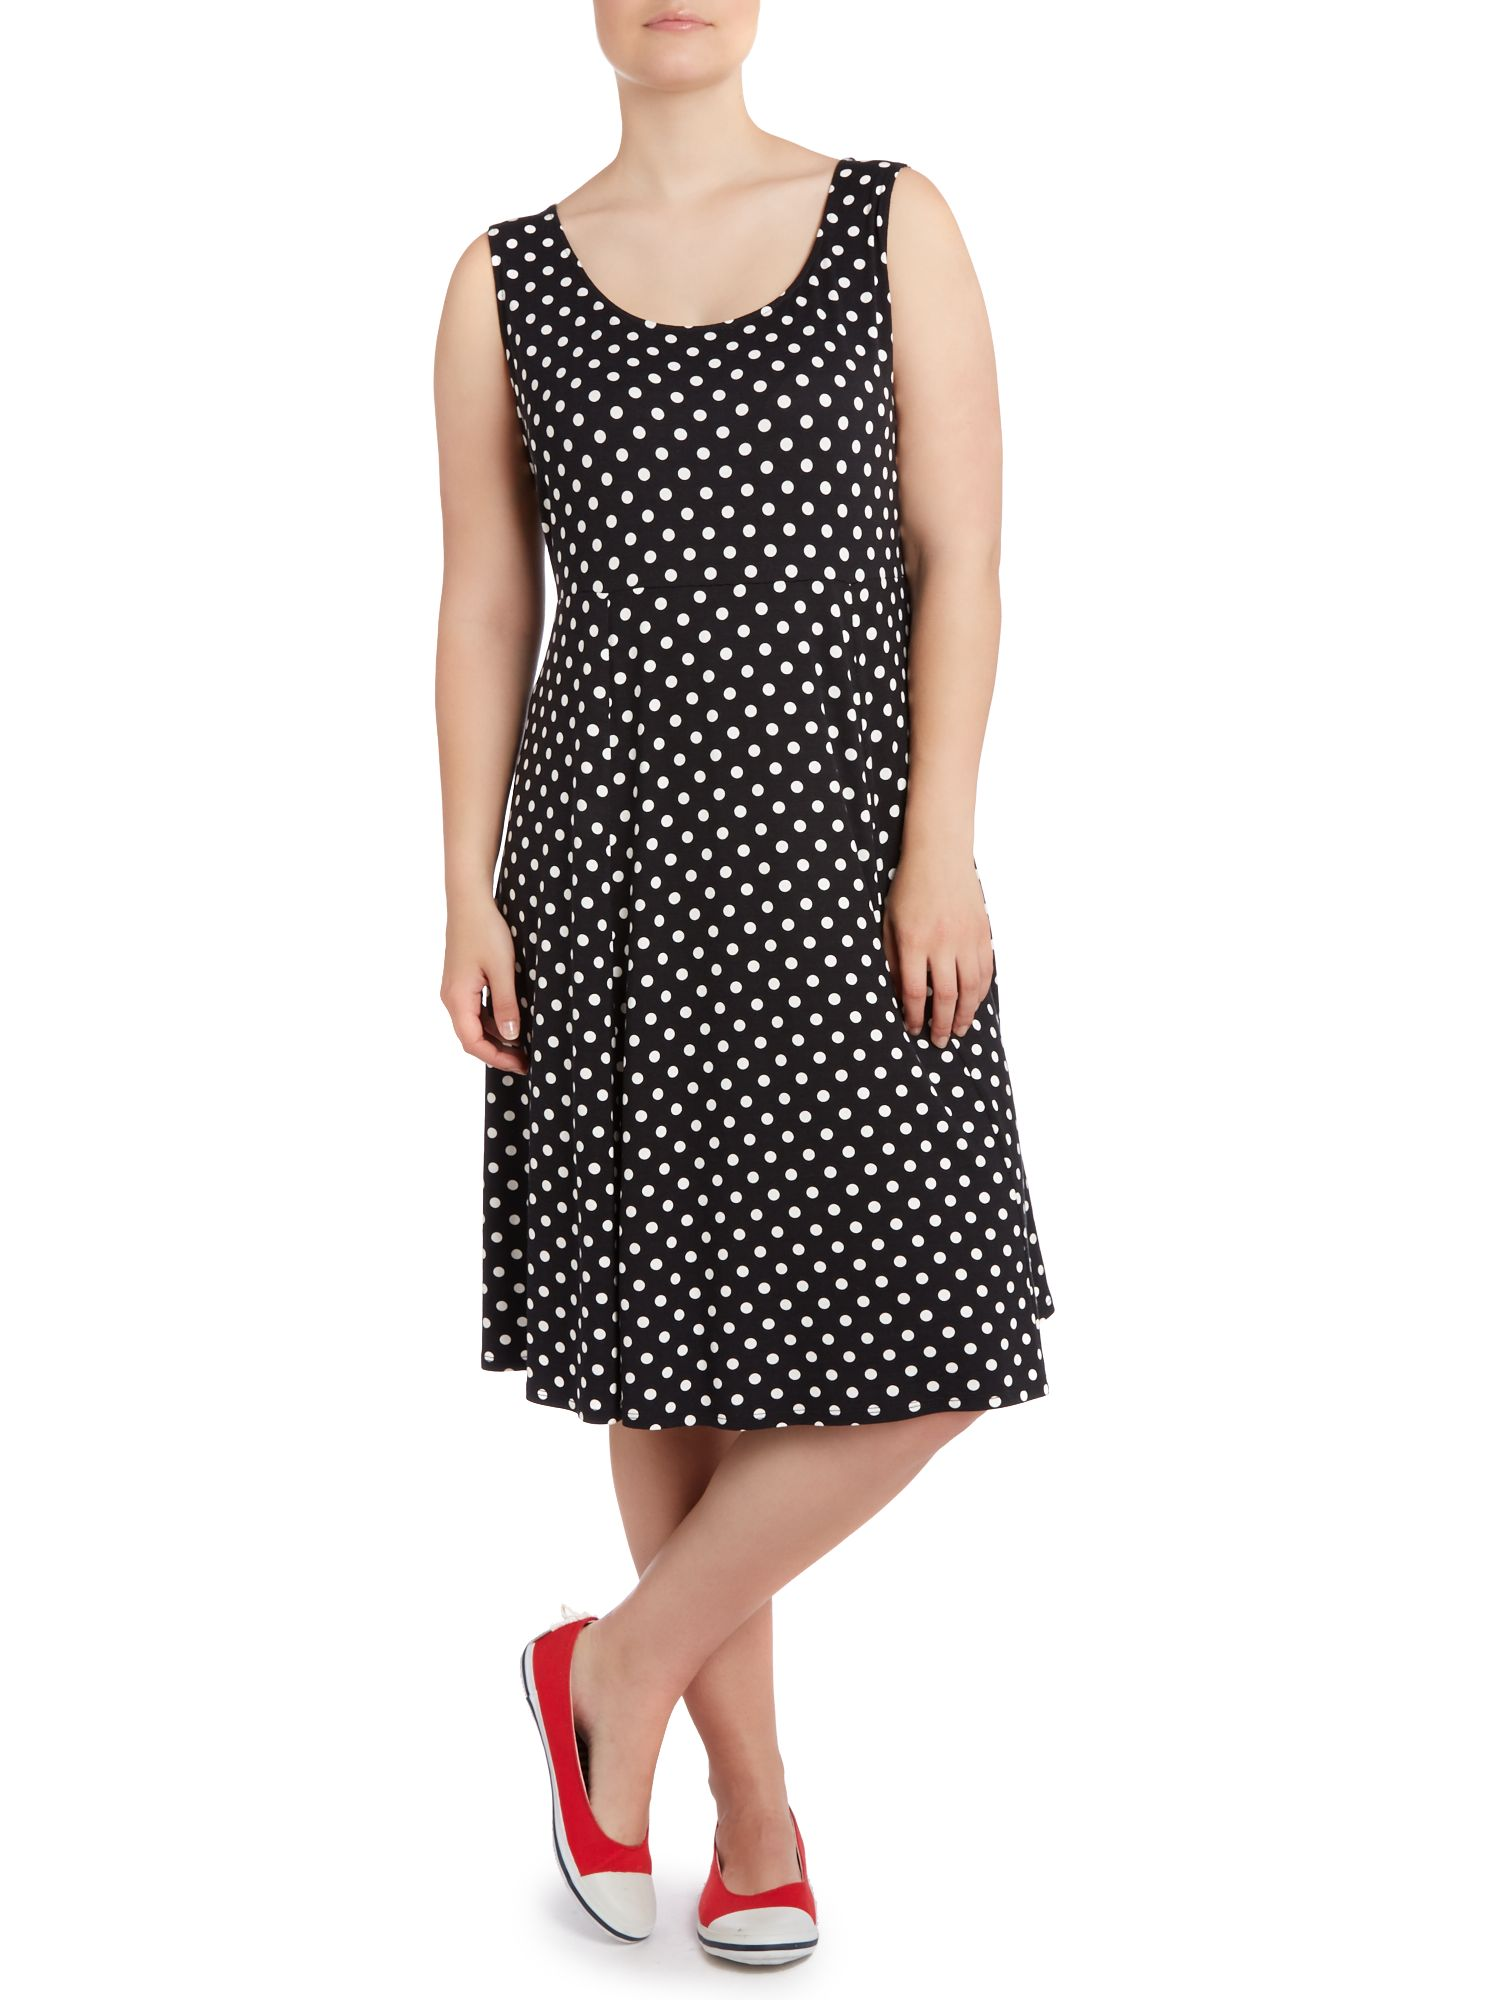 Spot sleeveless skater dress